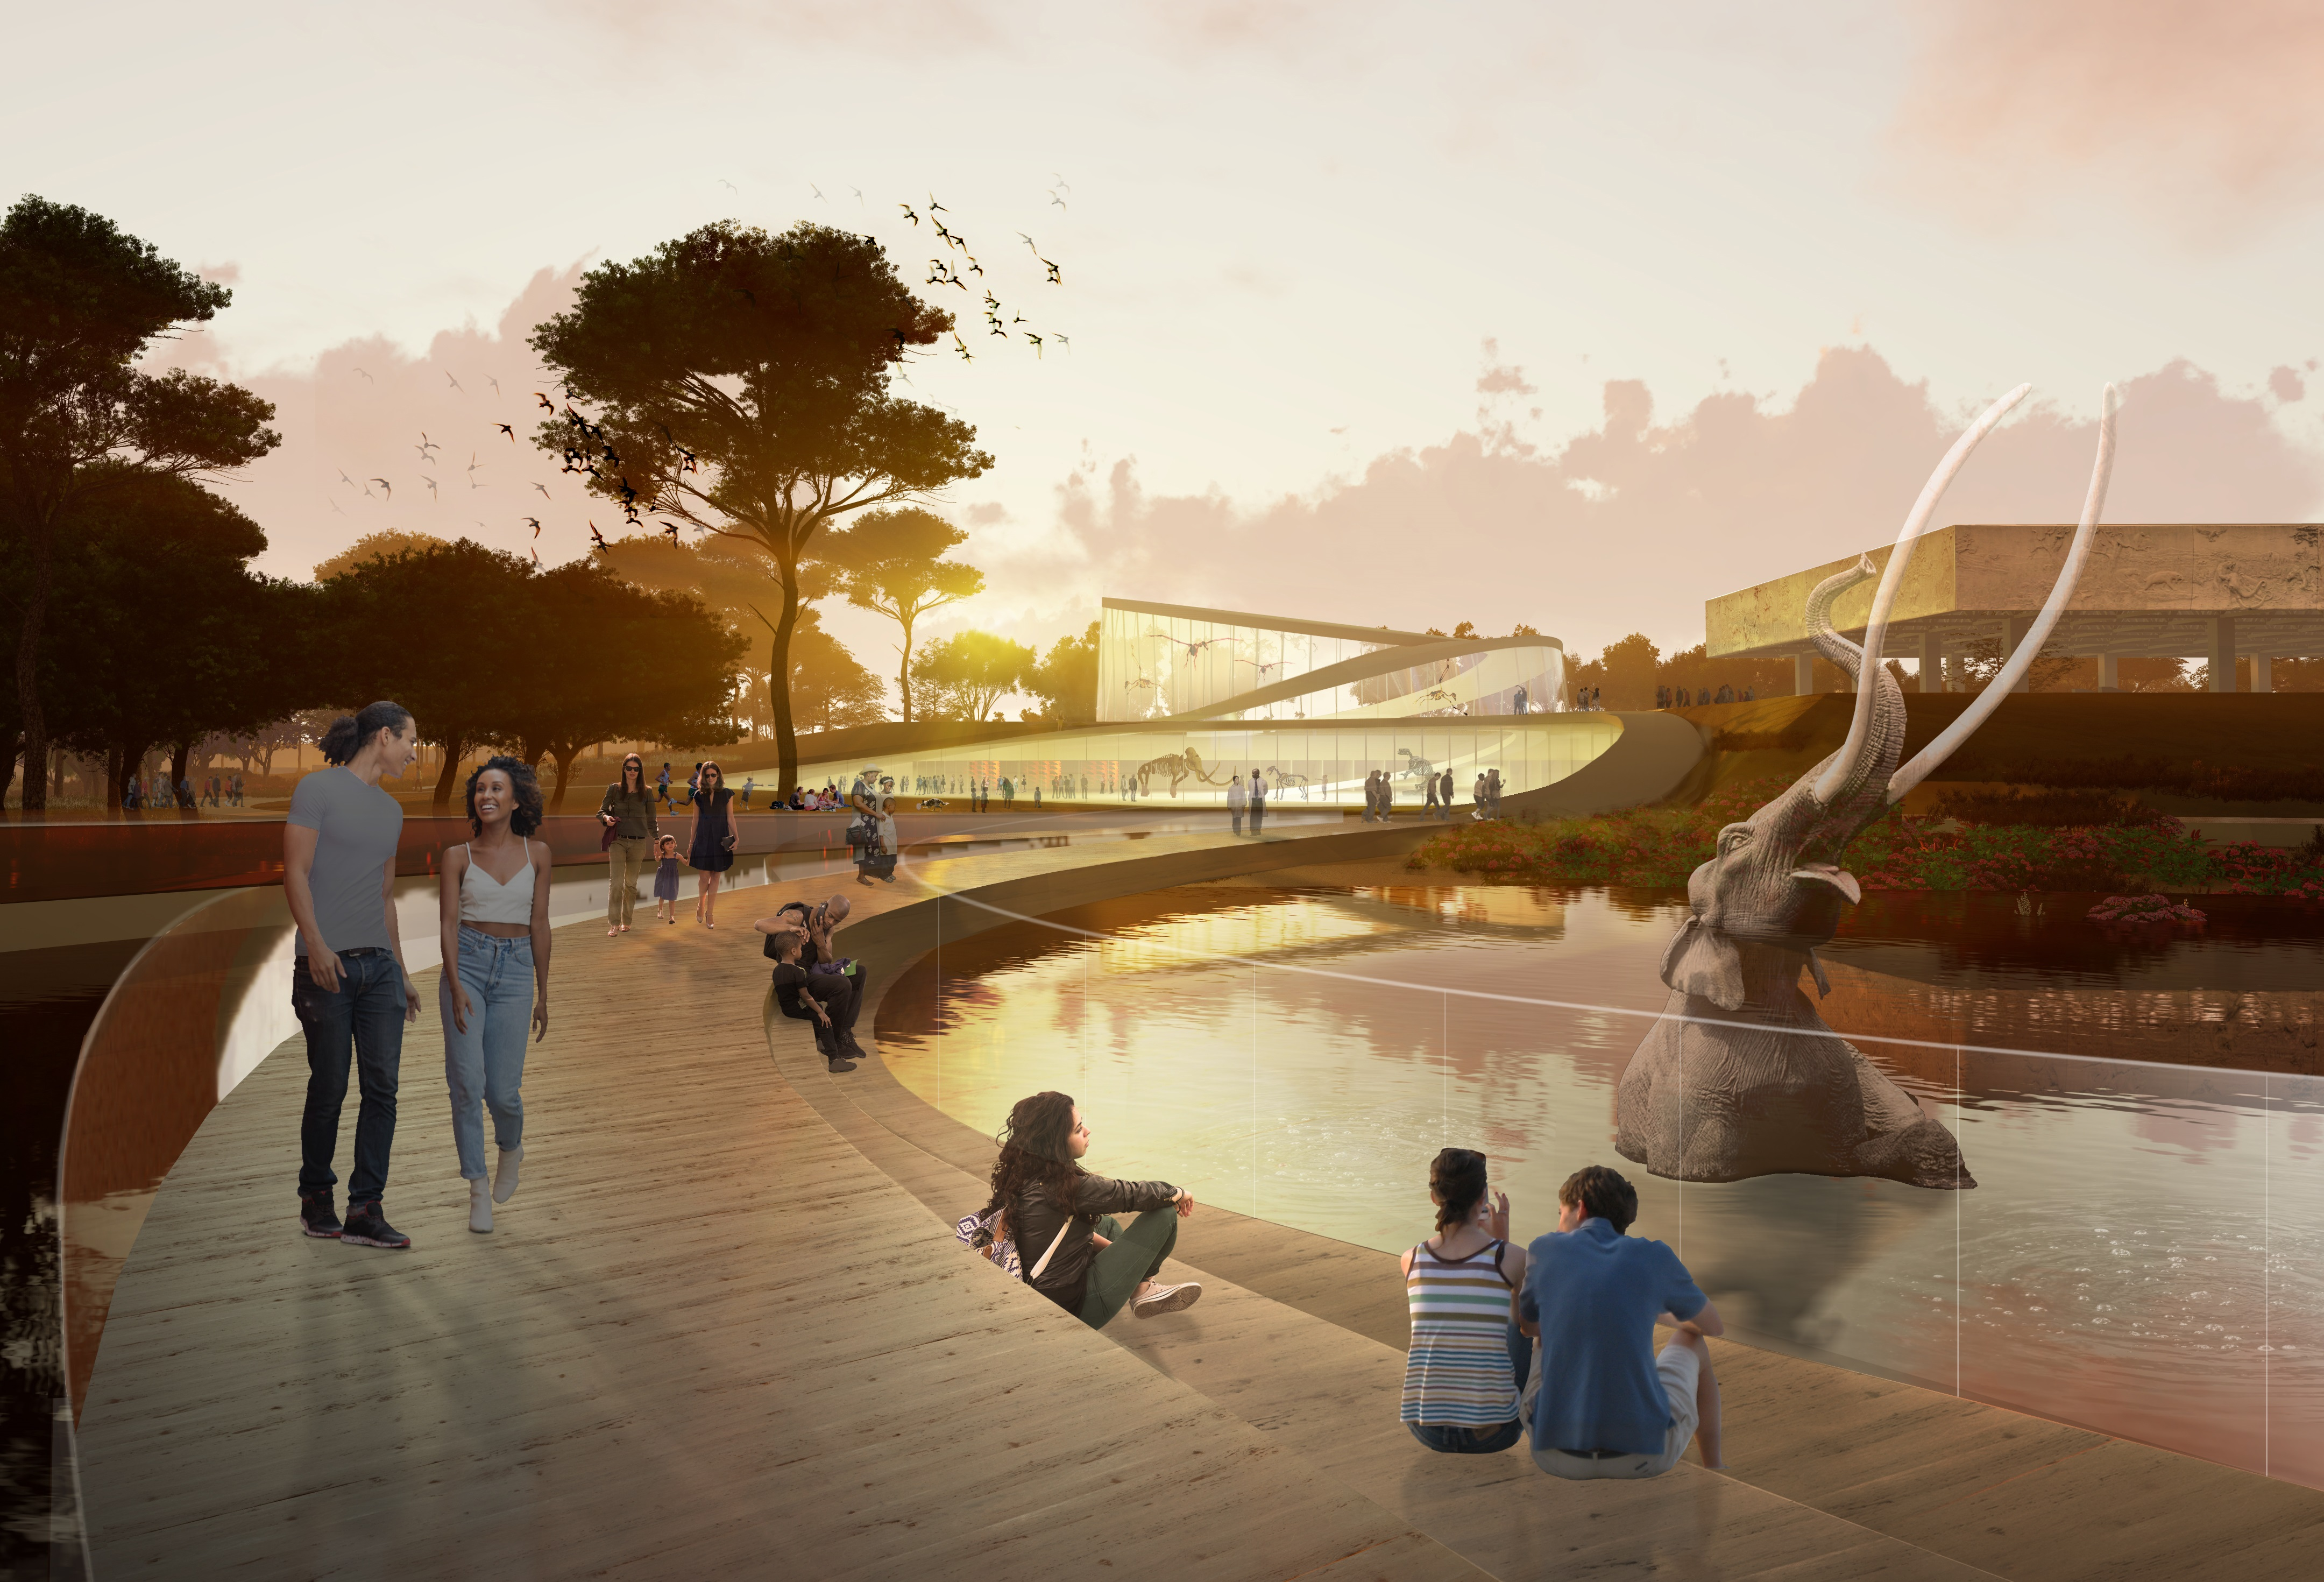 Winning design selected for La Brea Tar Pits makeover